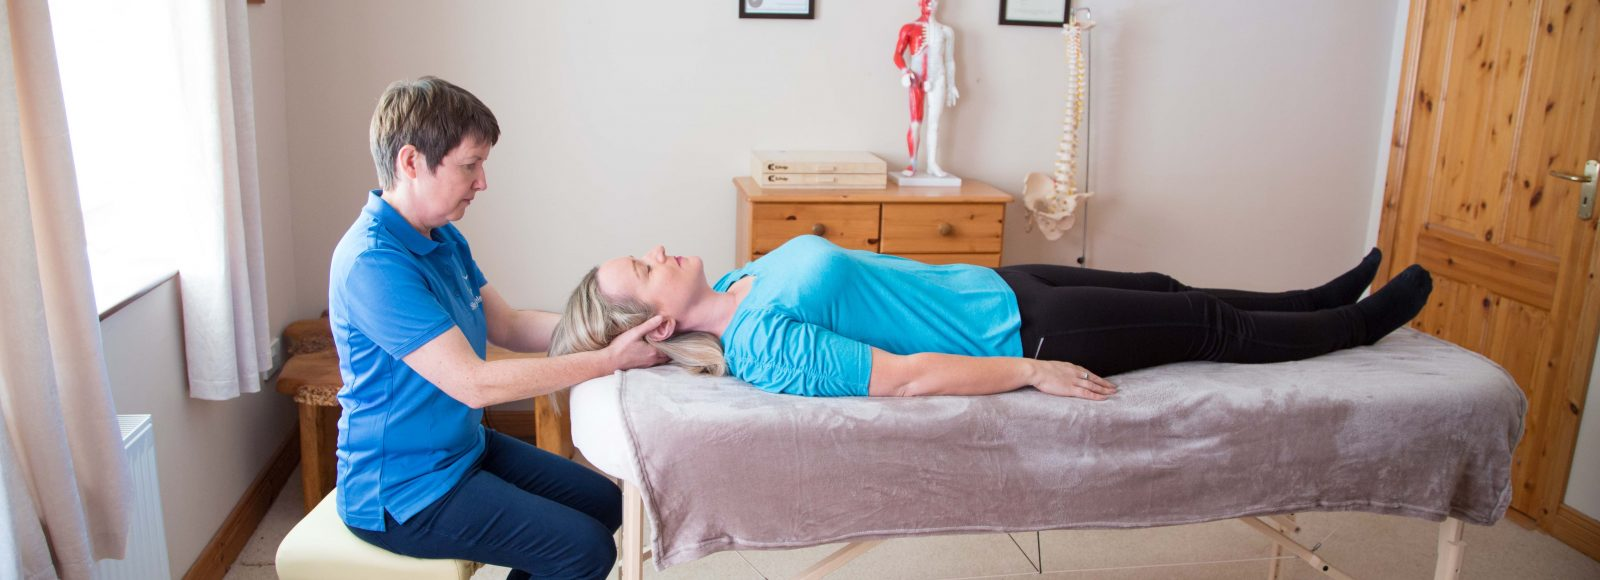 Sligo Kinesiology helping neck and shoulder pain